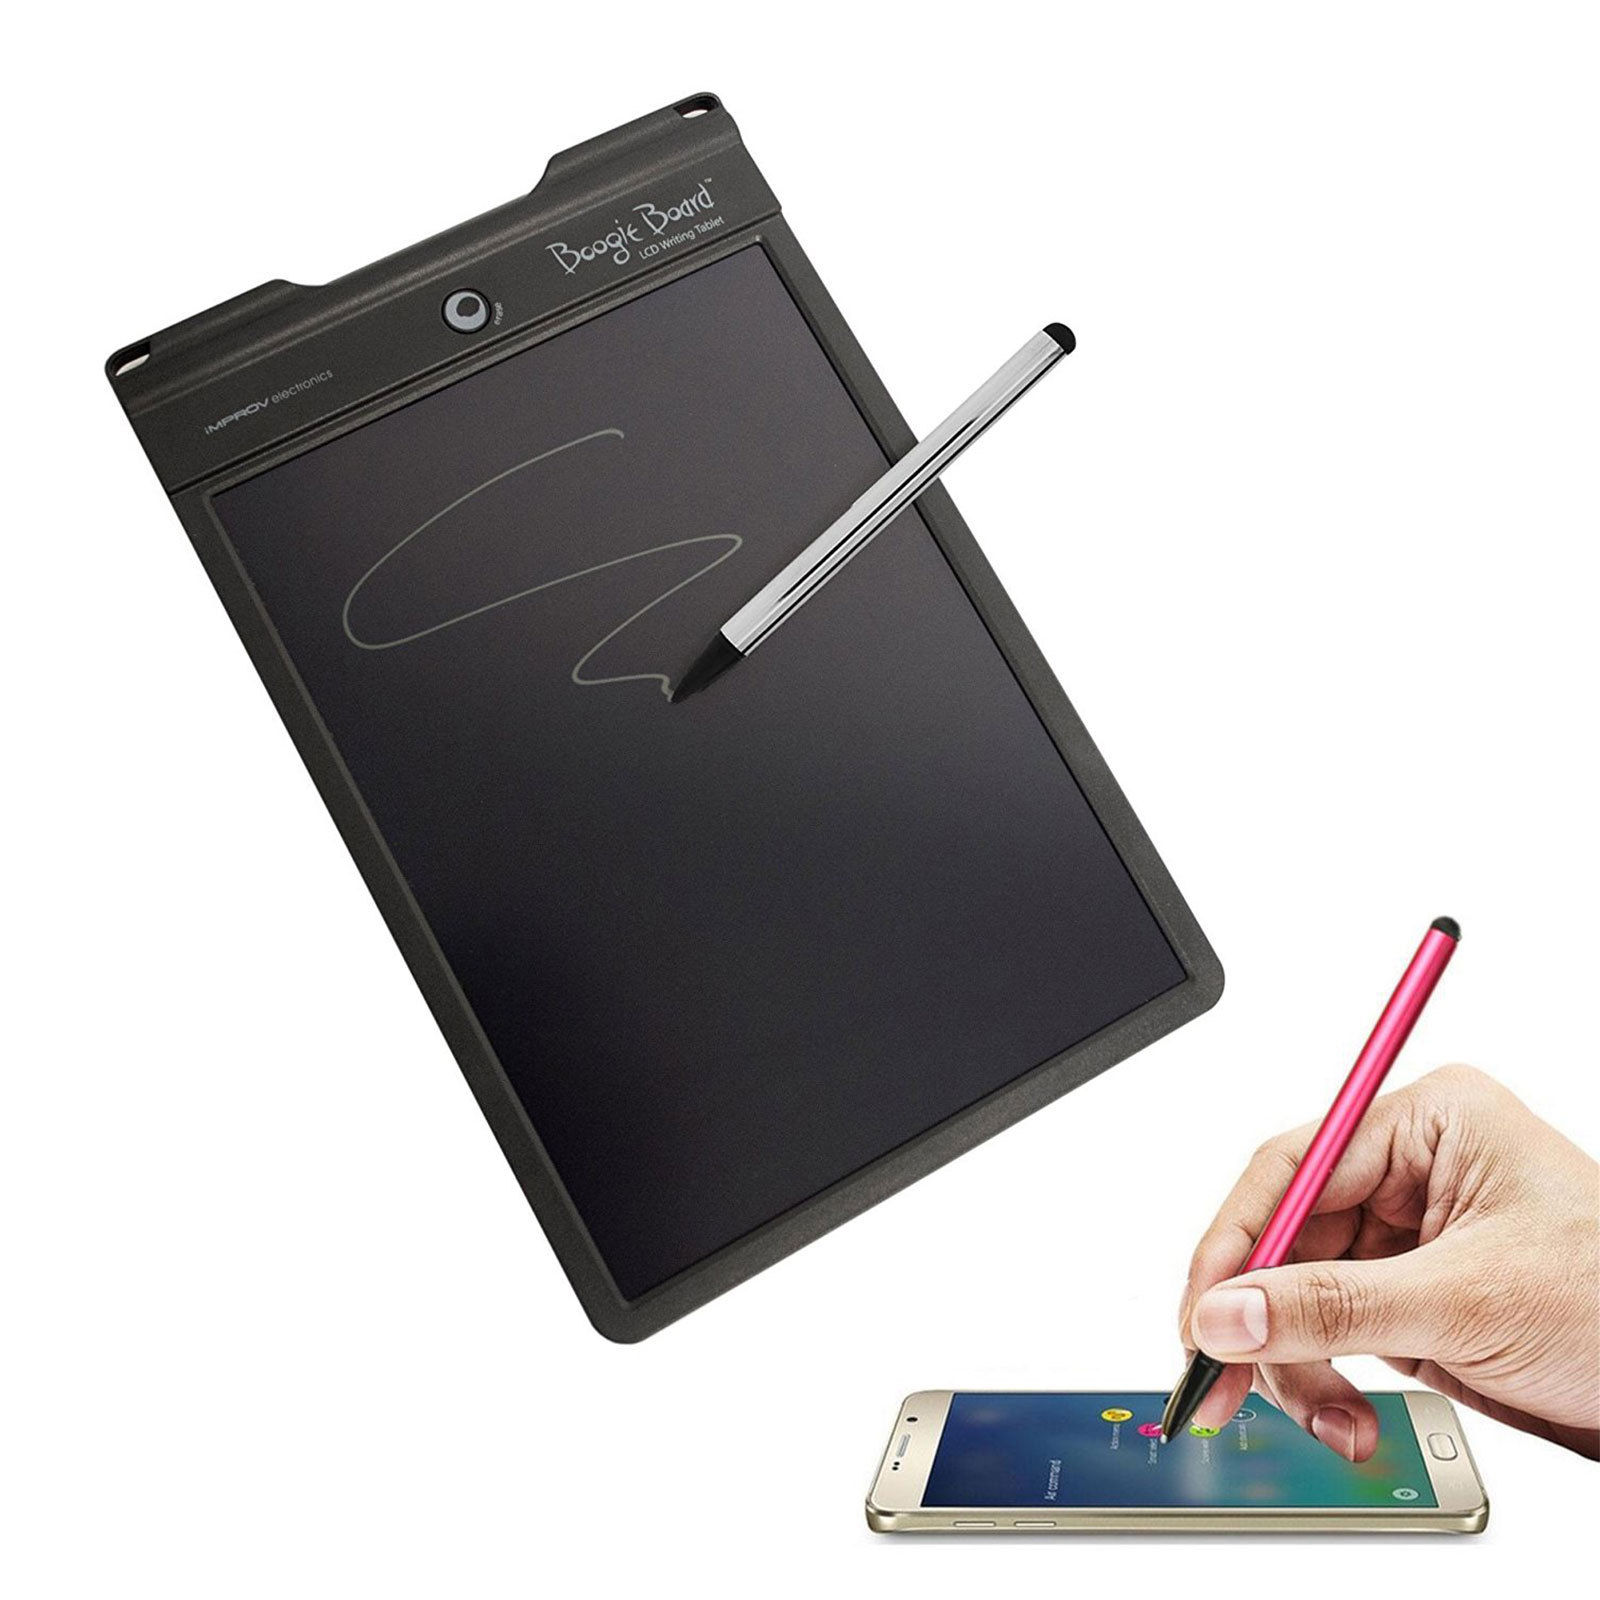 Amazing Details About 2 In 1 Touch Screen Pen Stylus Universal For Iphone Ipad Samsung Tablet Phone Pc Download Free Architecture Designs Itiscsunscenecom